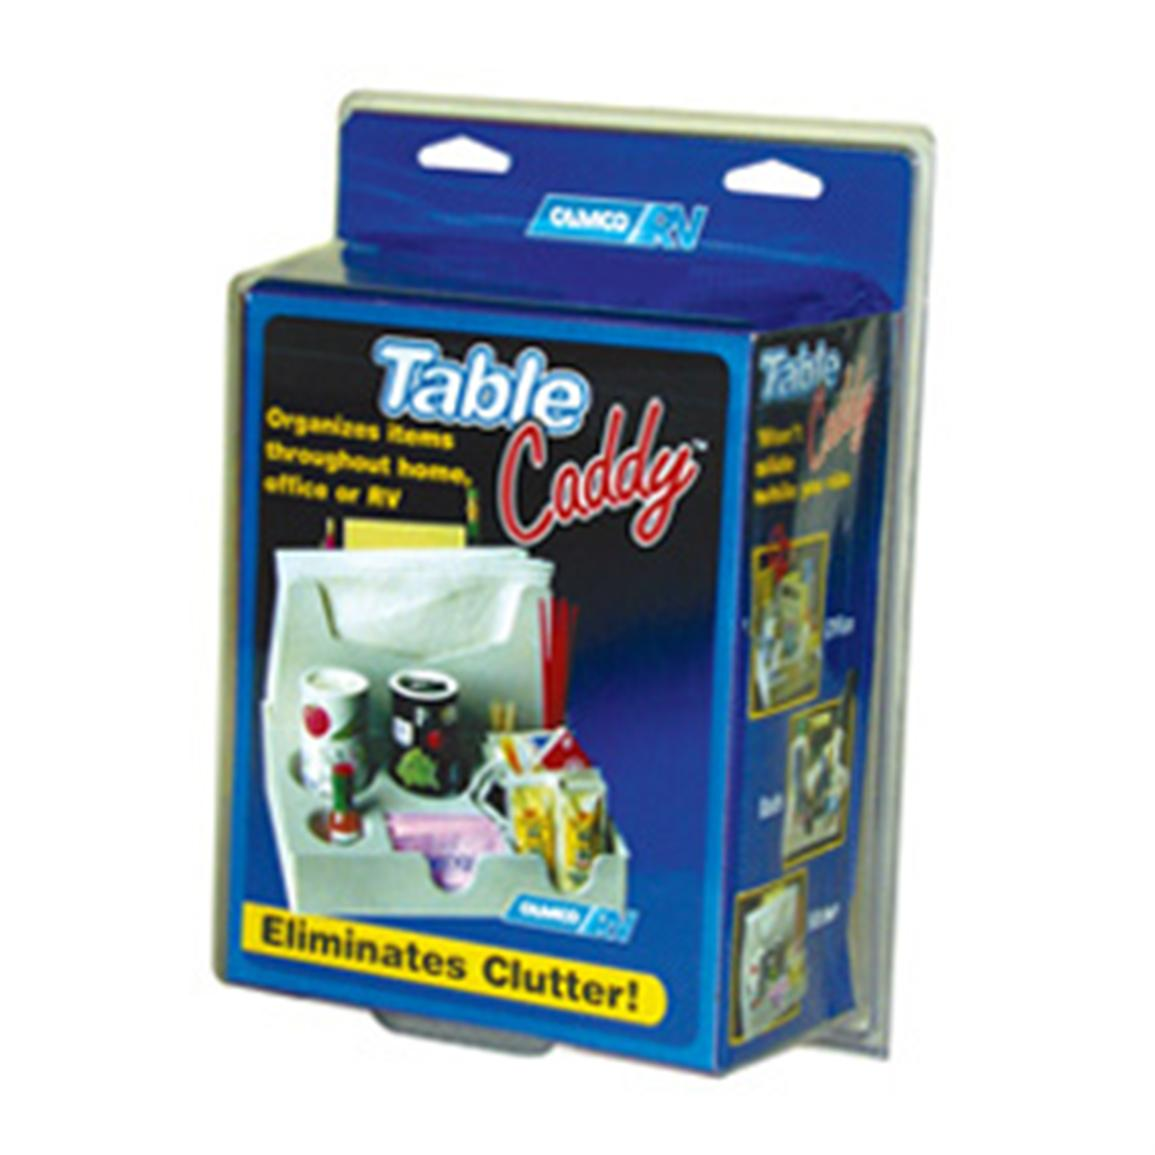 Camco® Table Caddy